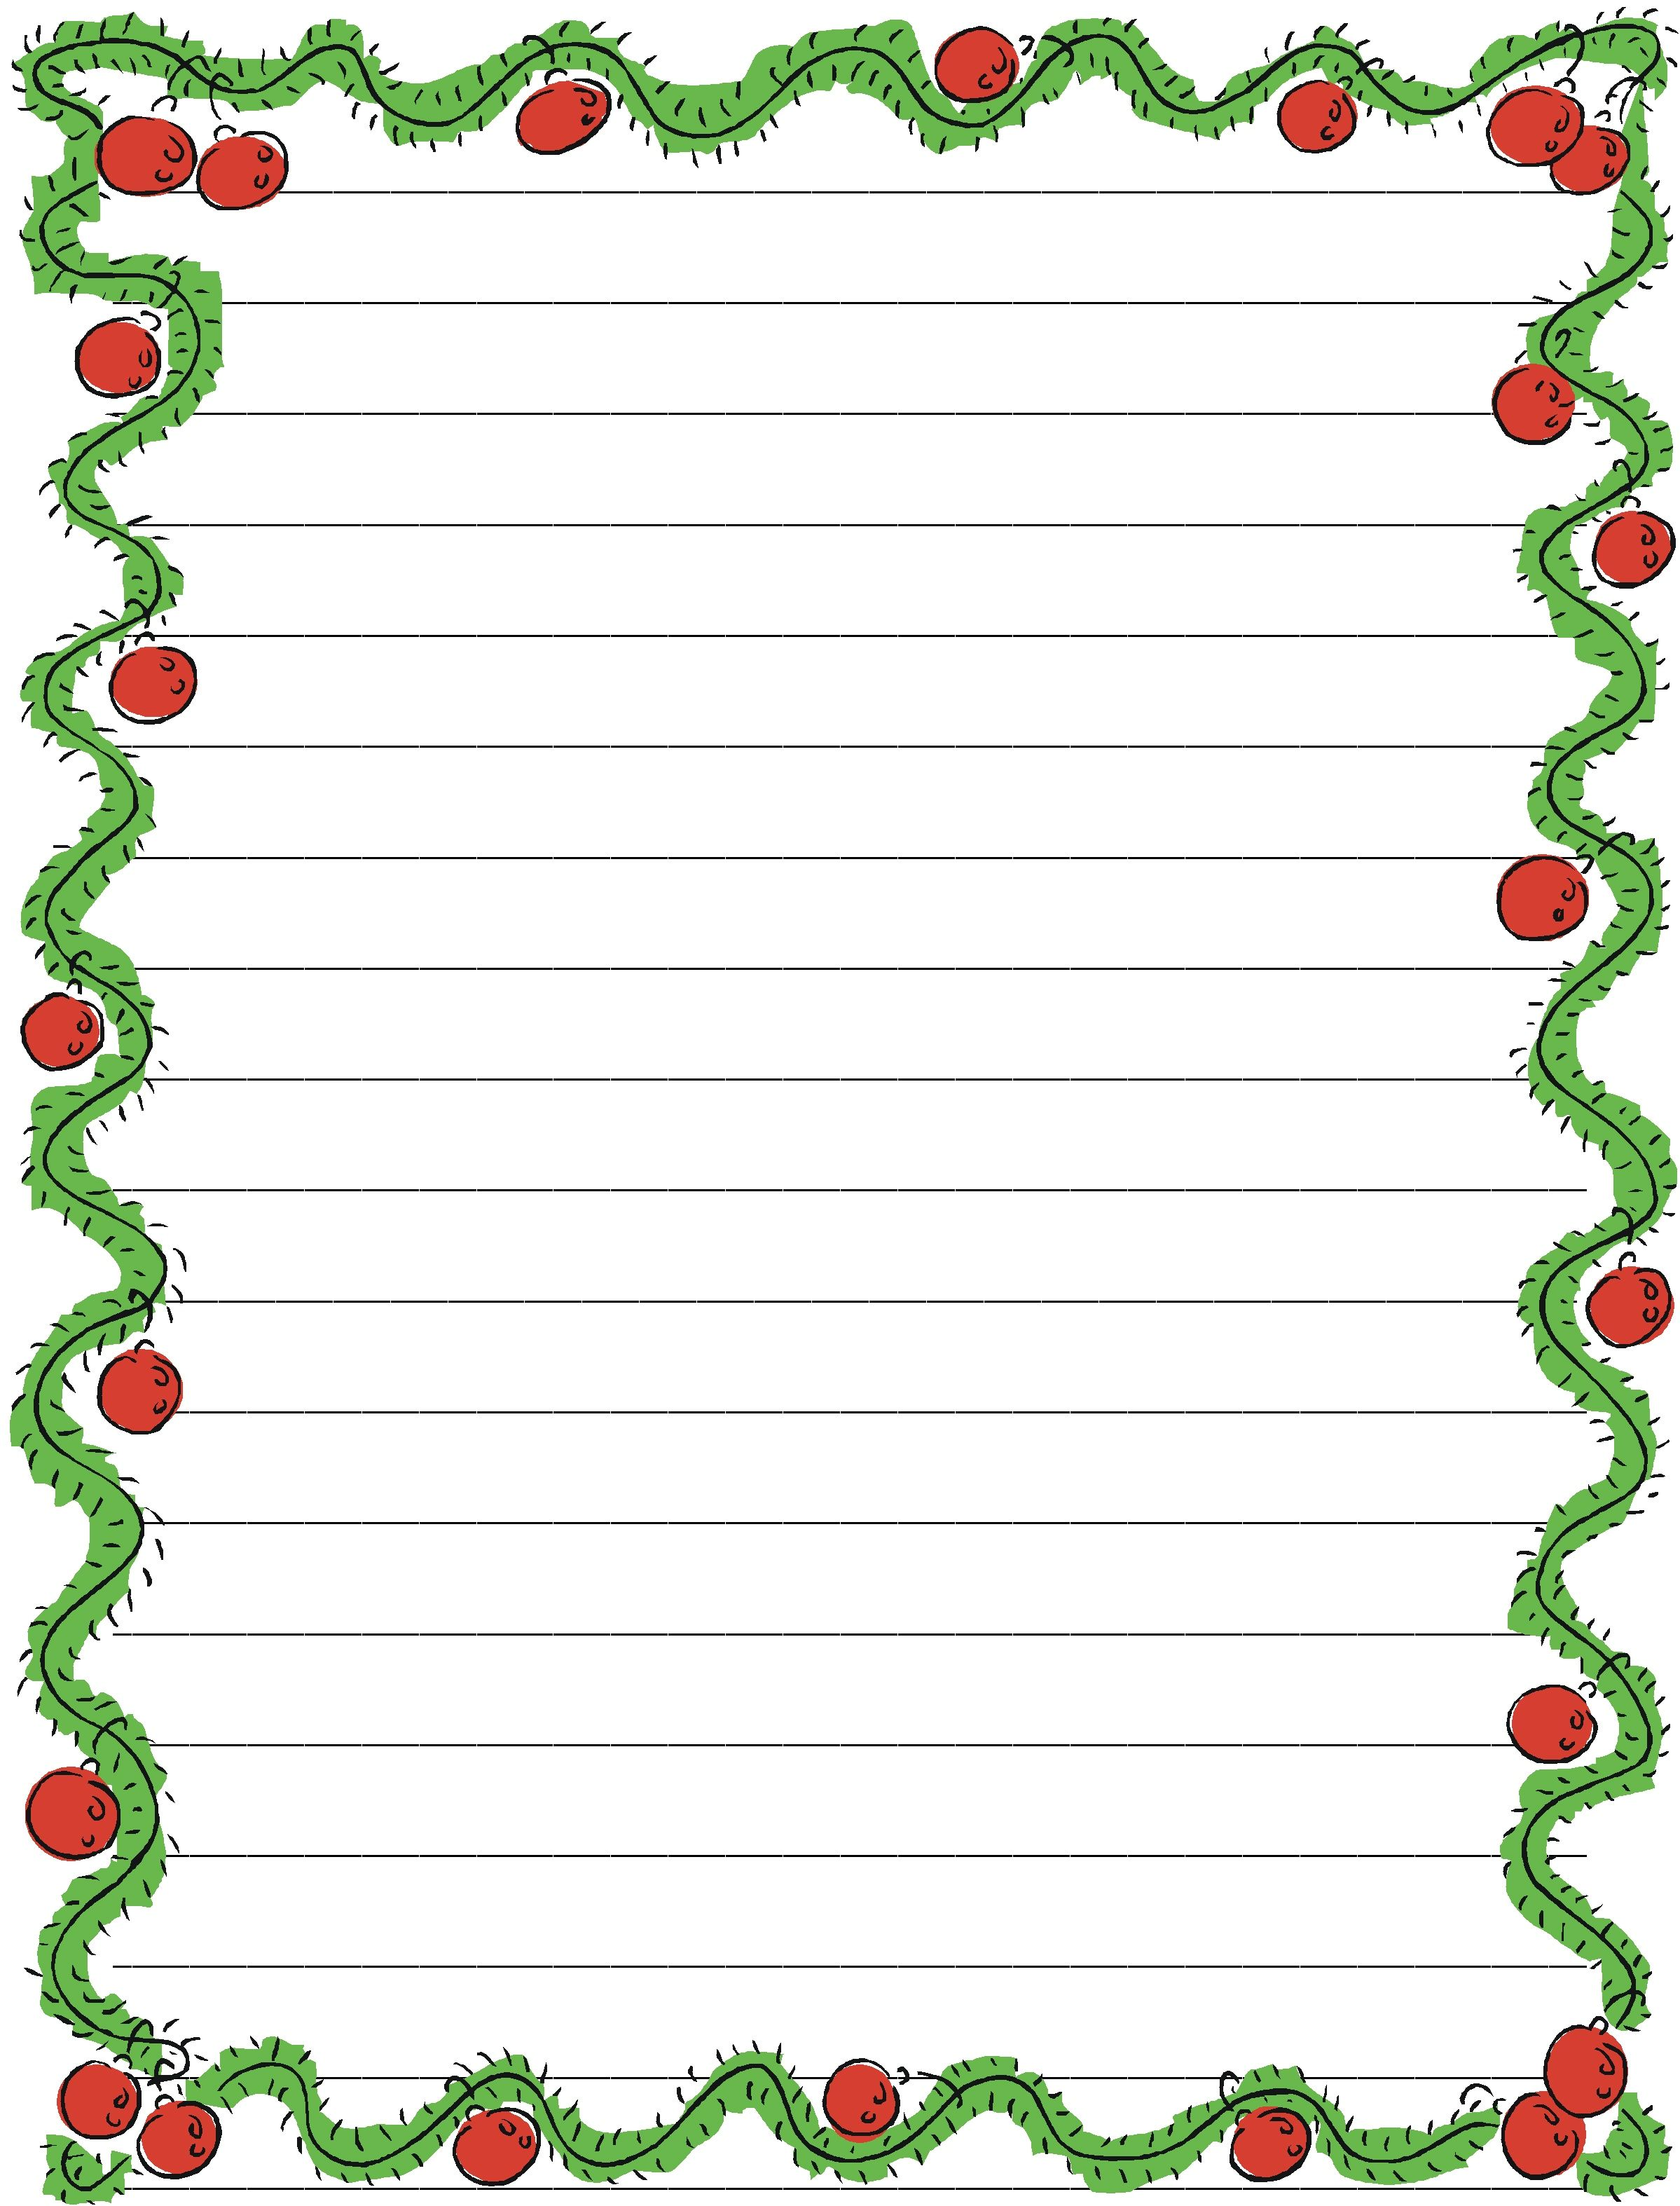 Lined Paper For Kids That Can Be Used As A Medium For Them To Learn Writing.